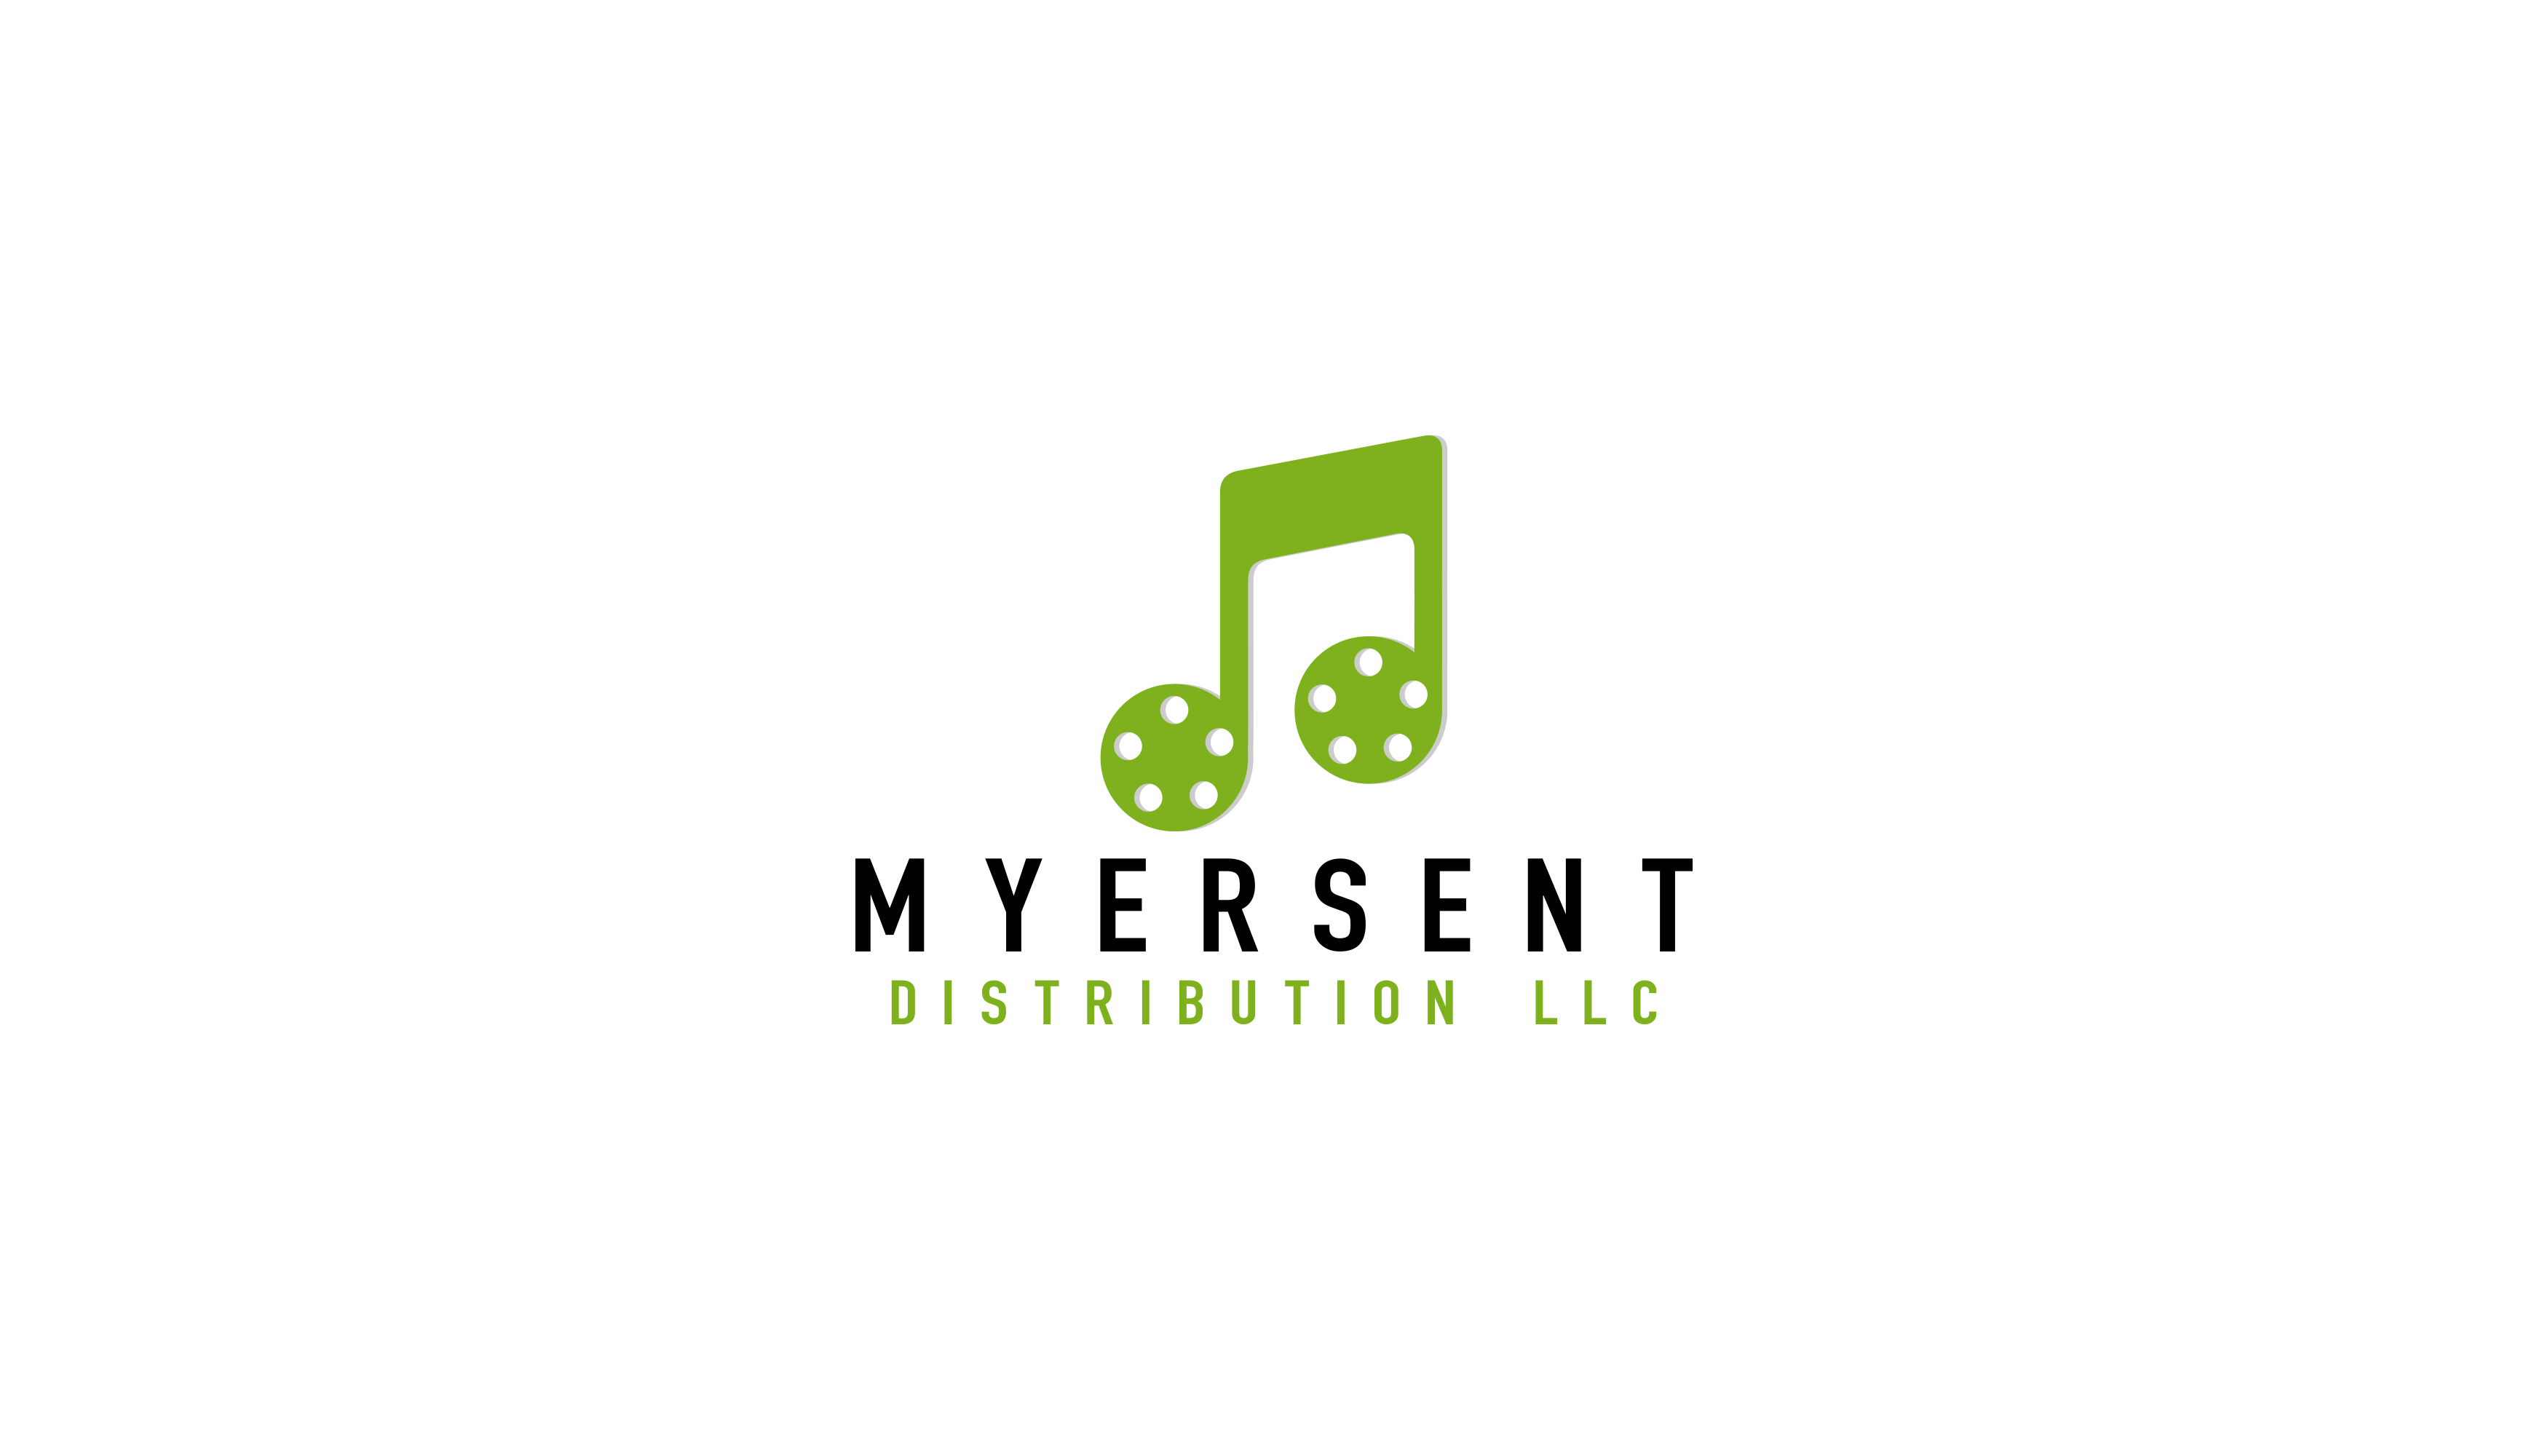 MyersEntDistribution LLC